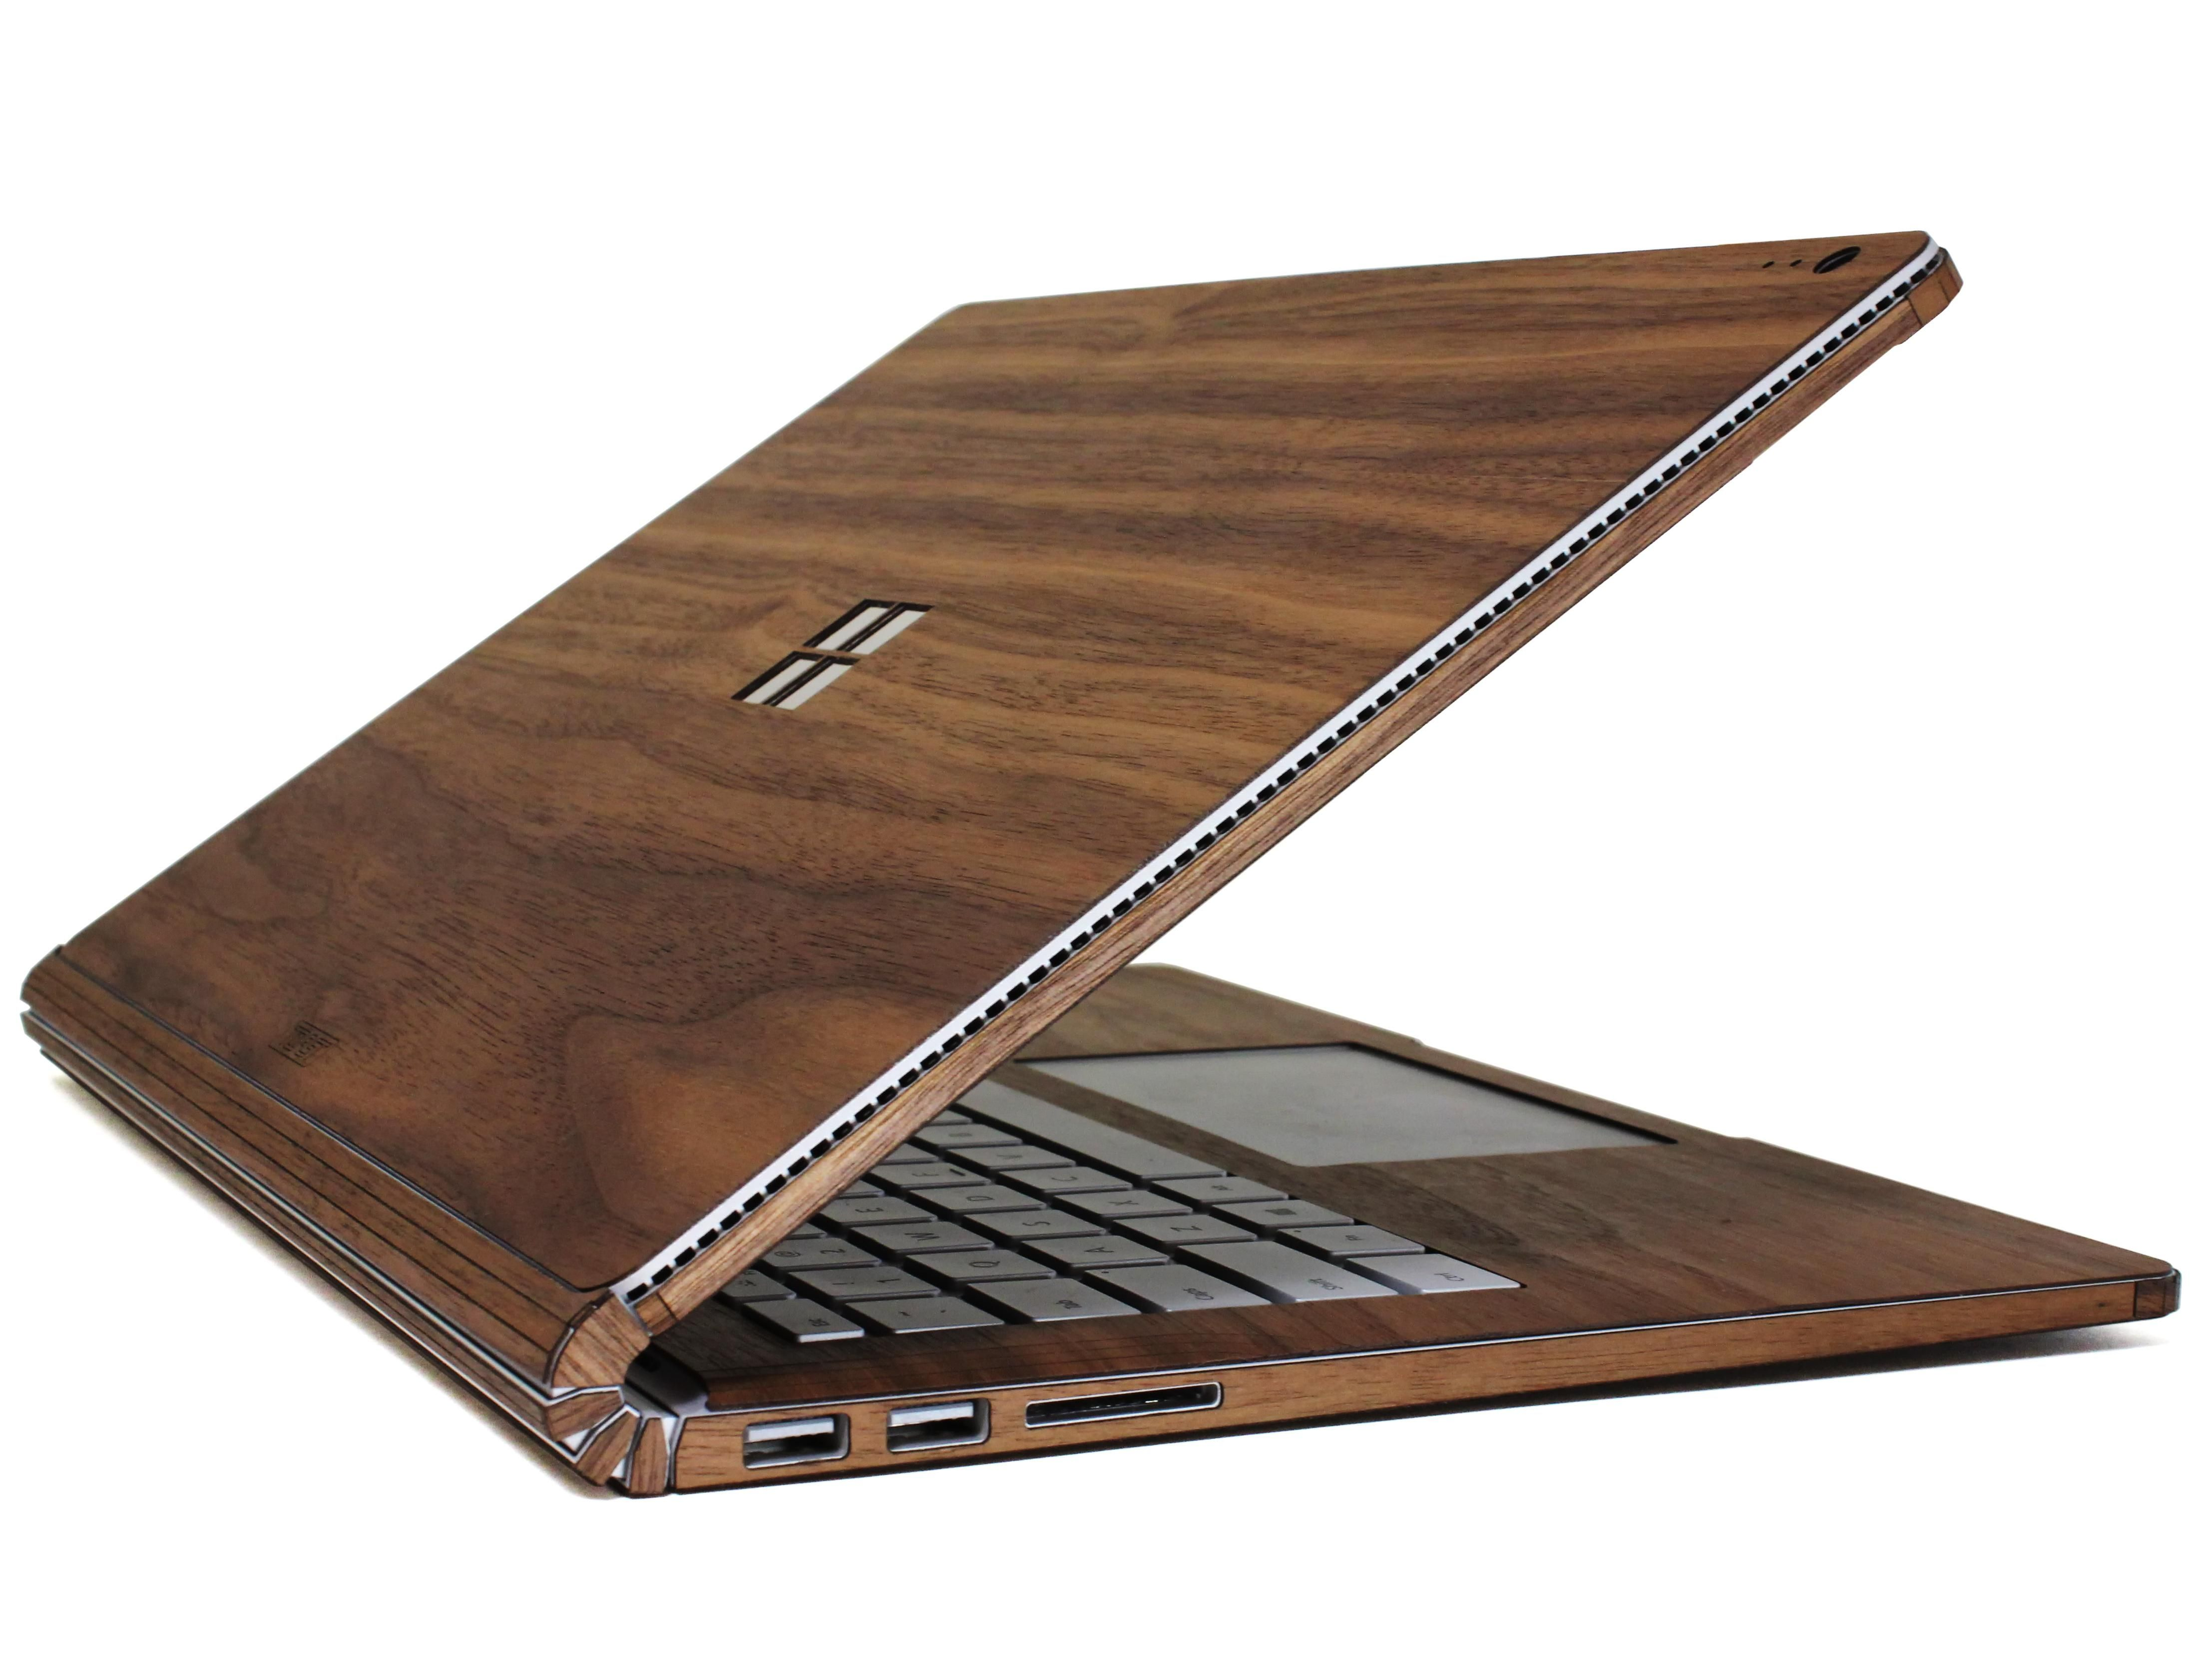 toast real wood microsoft surface book cover w i s h l i s t